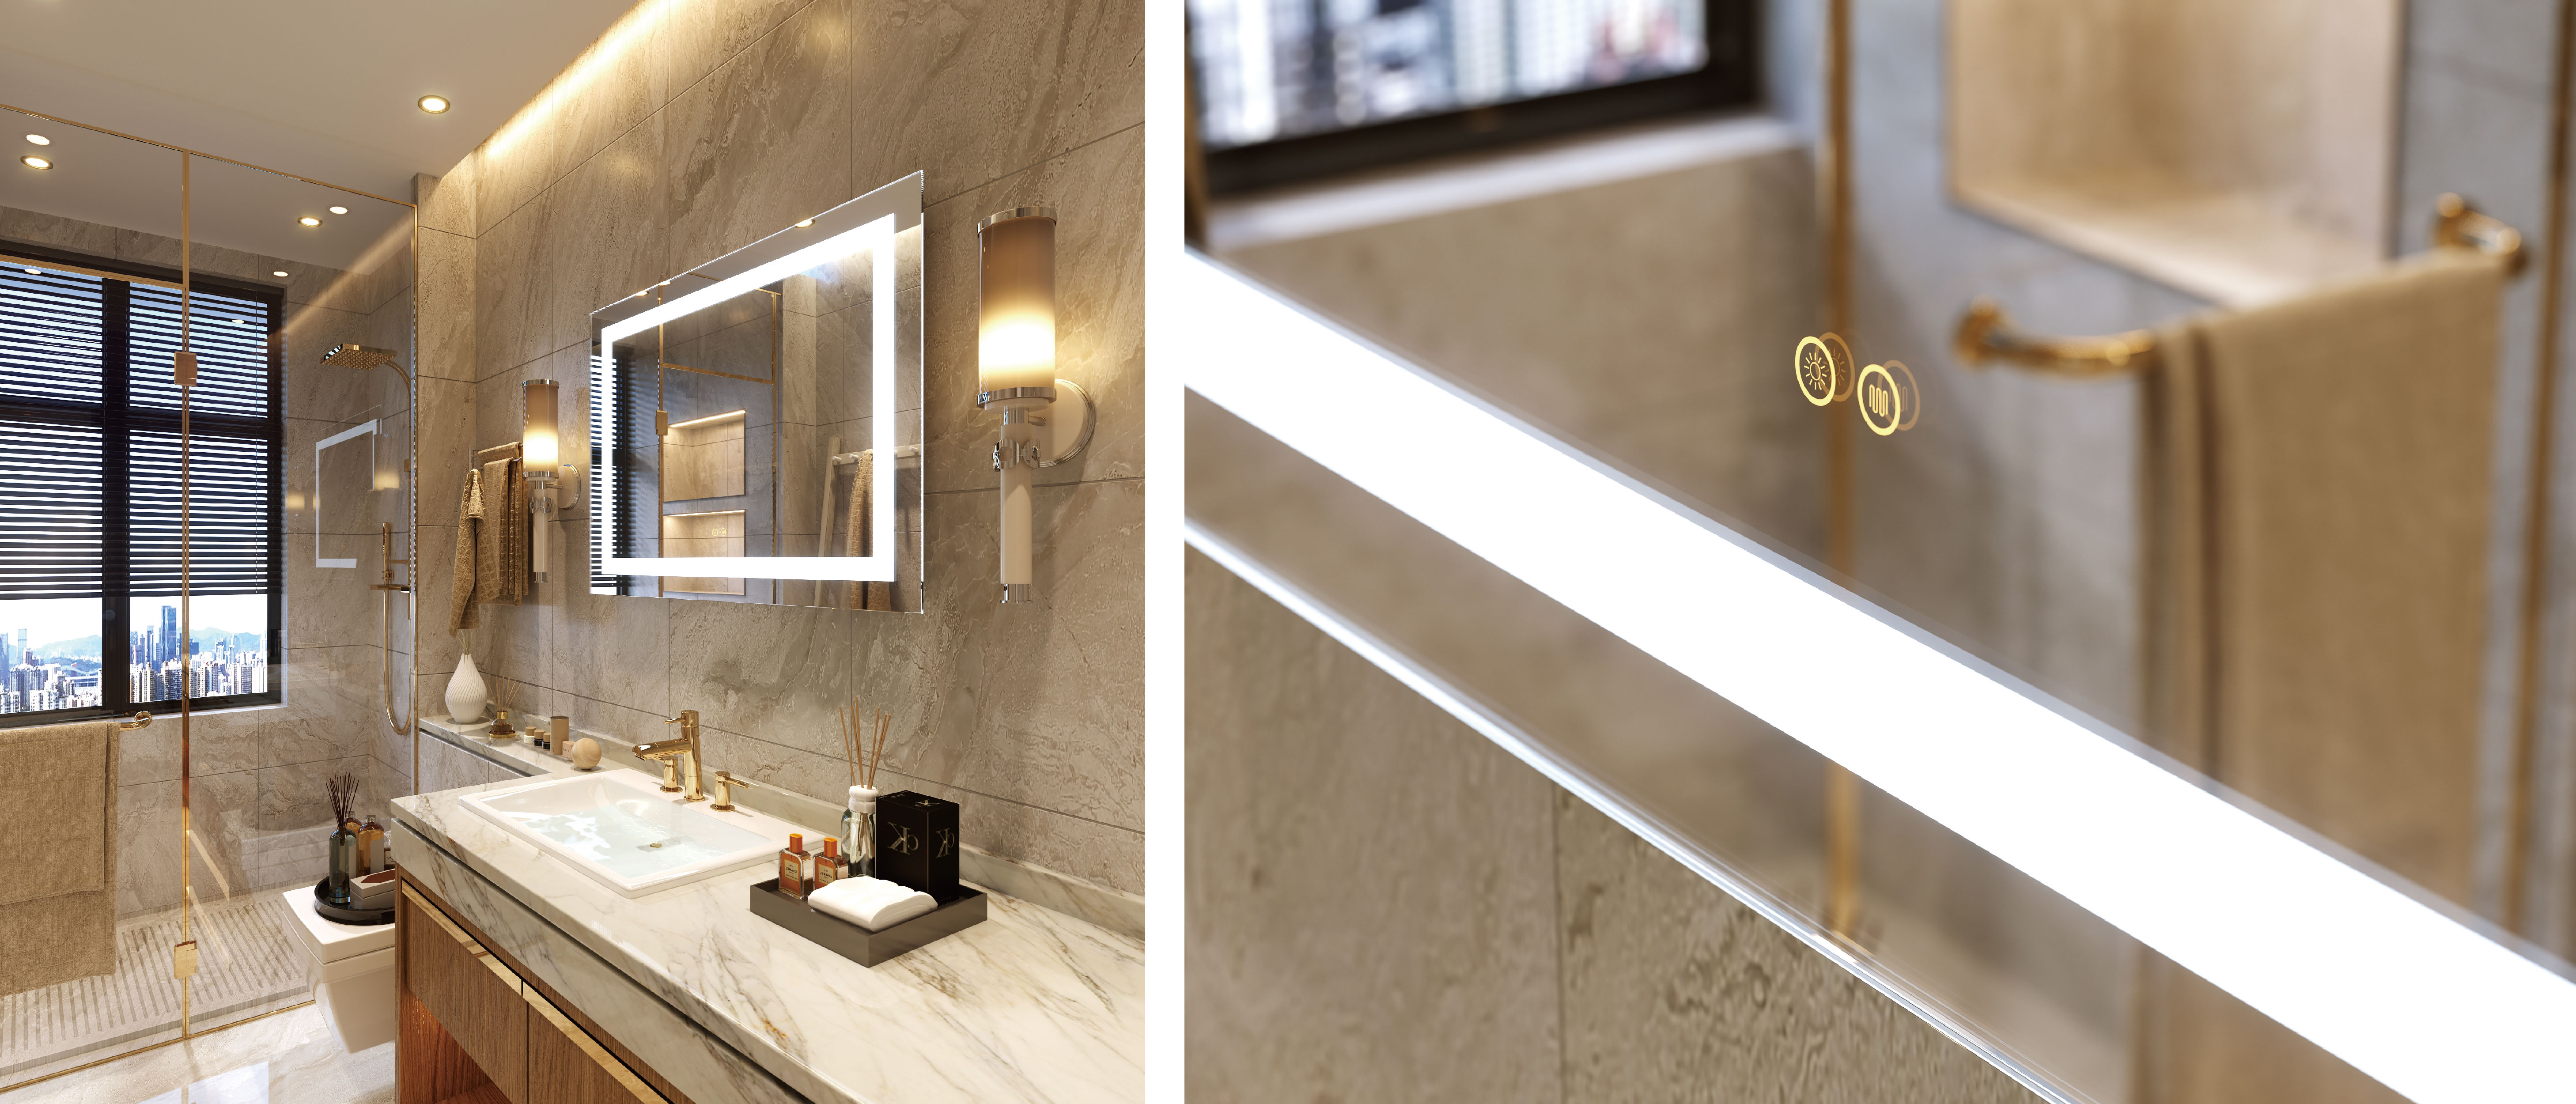 LED Mirror Bathroom Mirrors With Light Wall Mounted-02